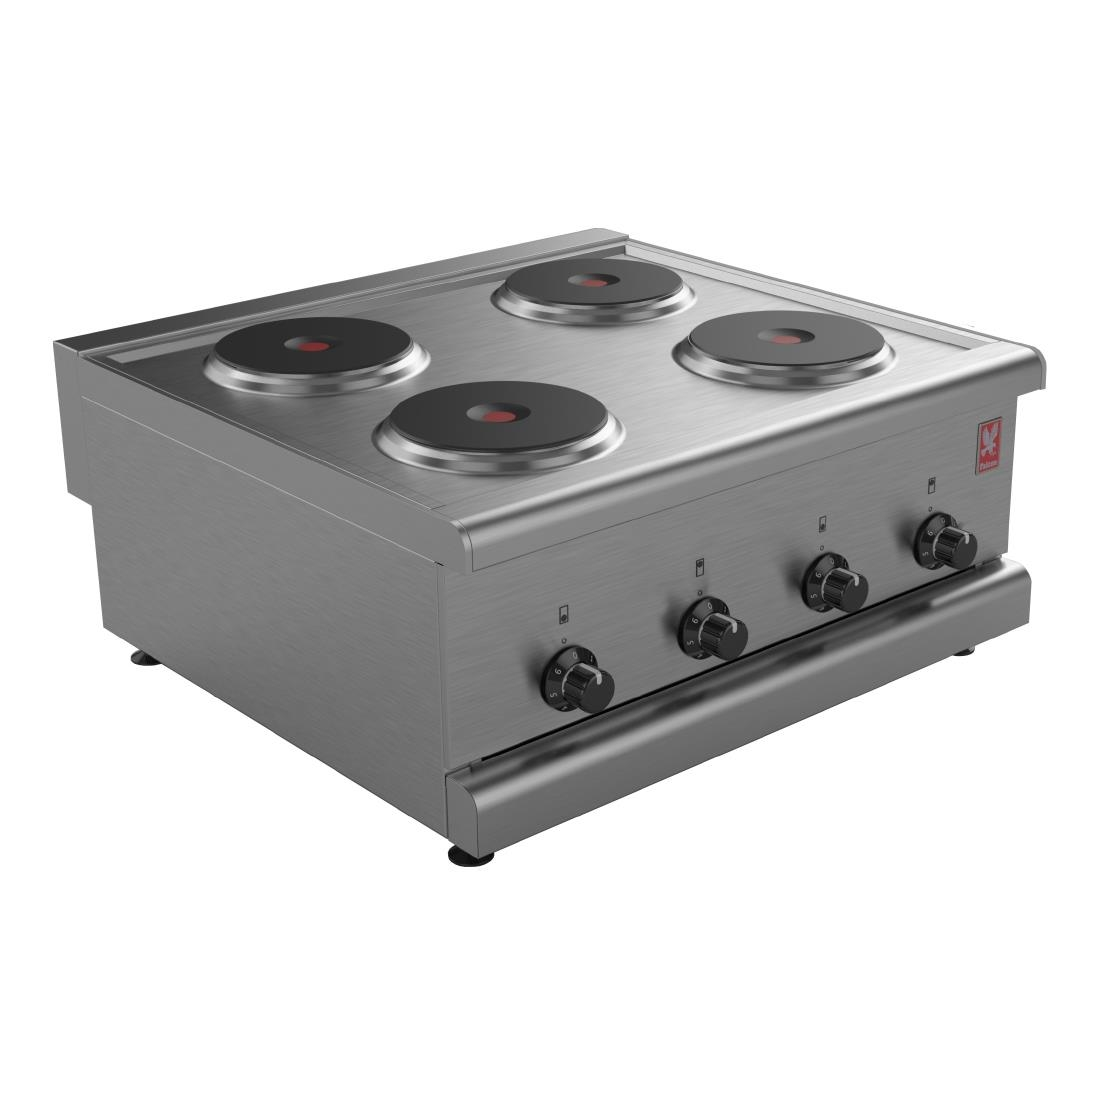 Image of Falcon 350 Series 4 Hotplate Electric Boiling Top E350/33